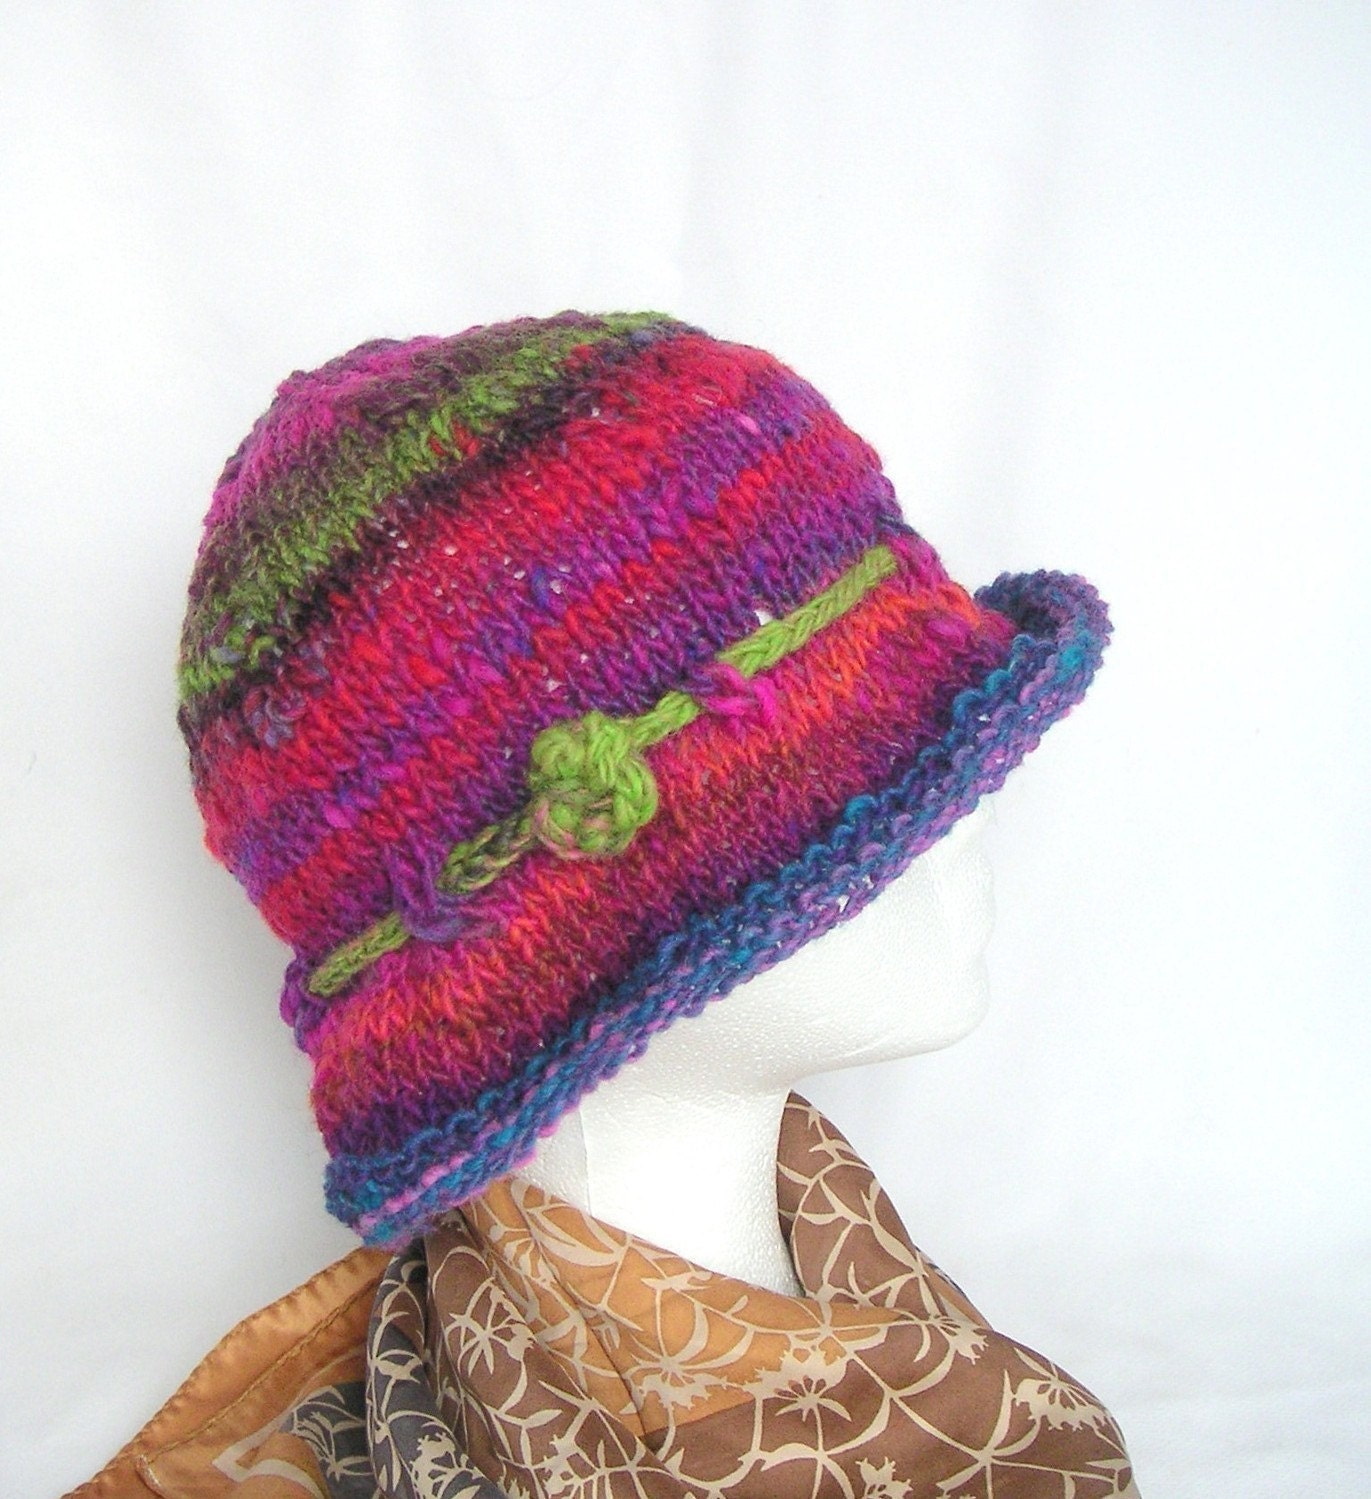 Tip #1: Use whatever method you like for knitting in the round. Most hats are knit in the round, and in almost all cases, you can use whatever method you like best.